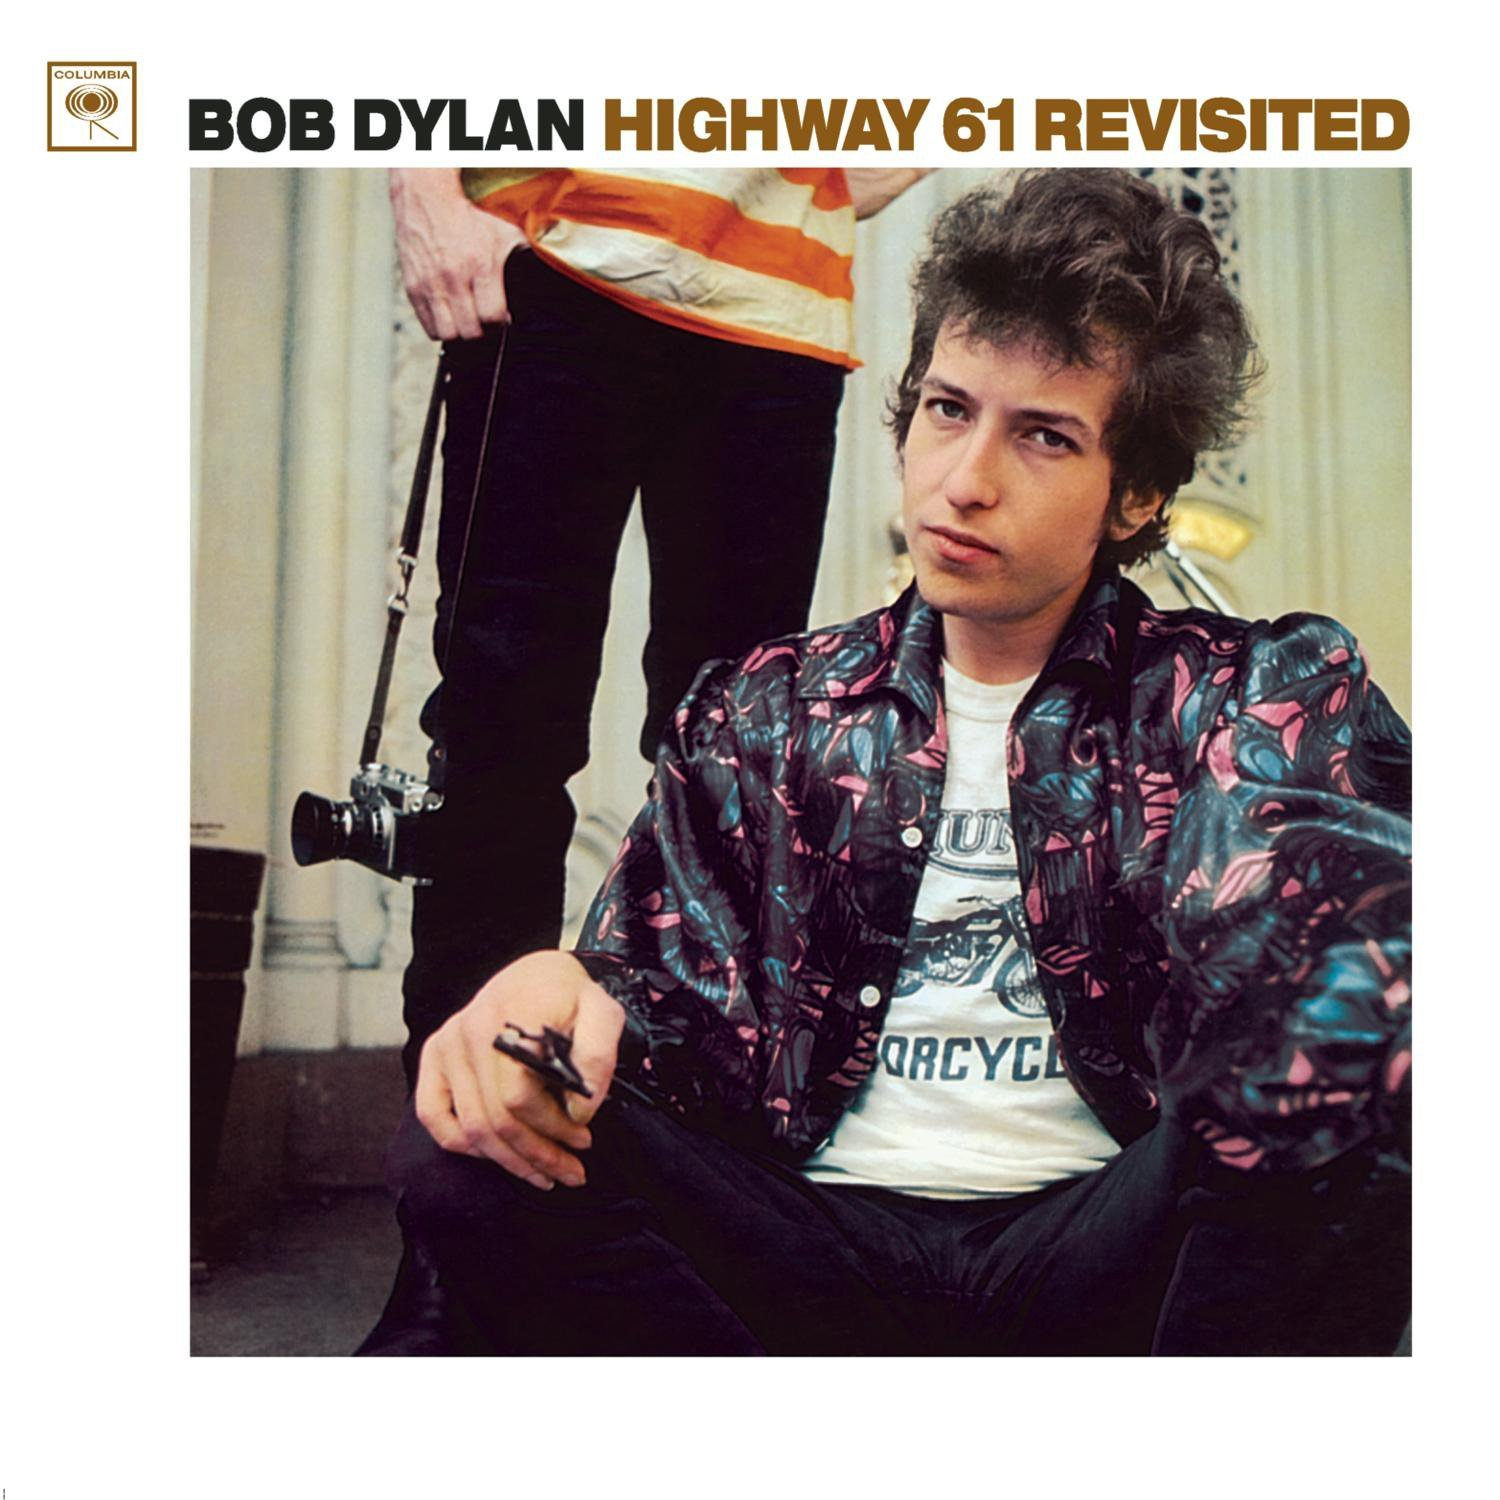 BD Highway 61 revisited.jpg